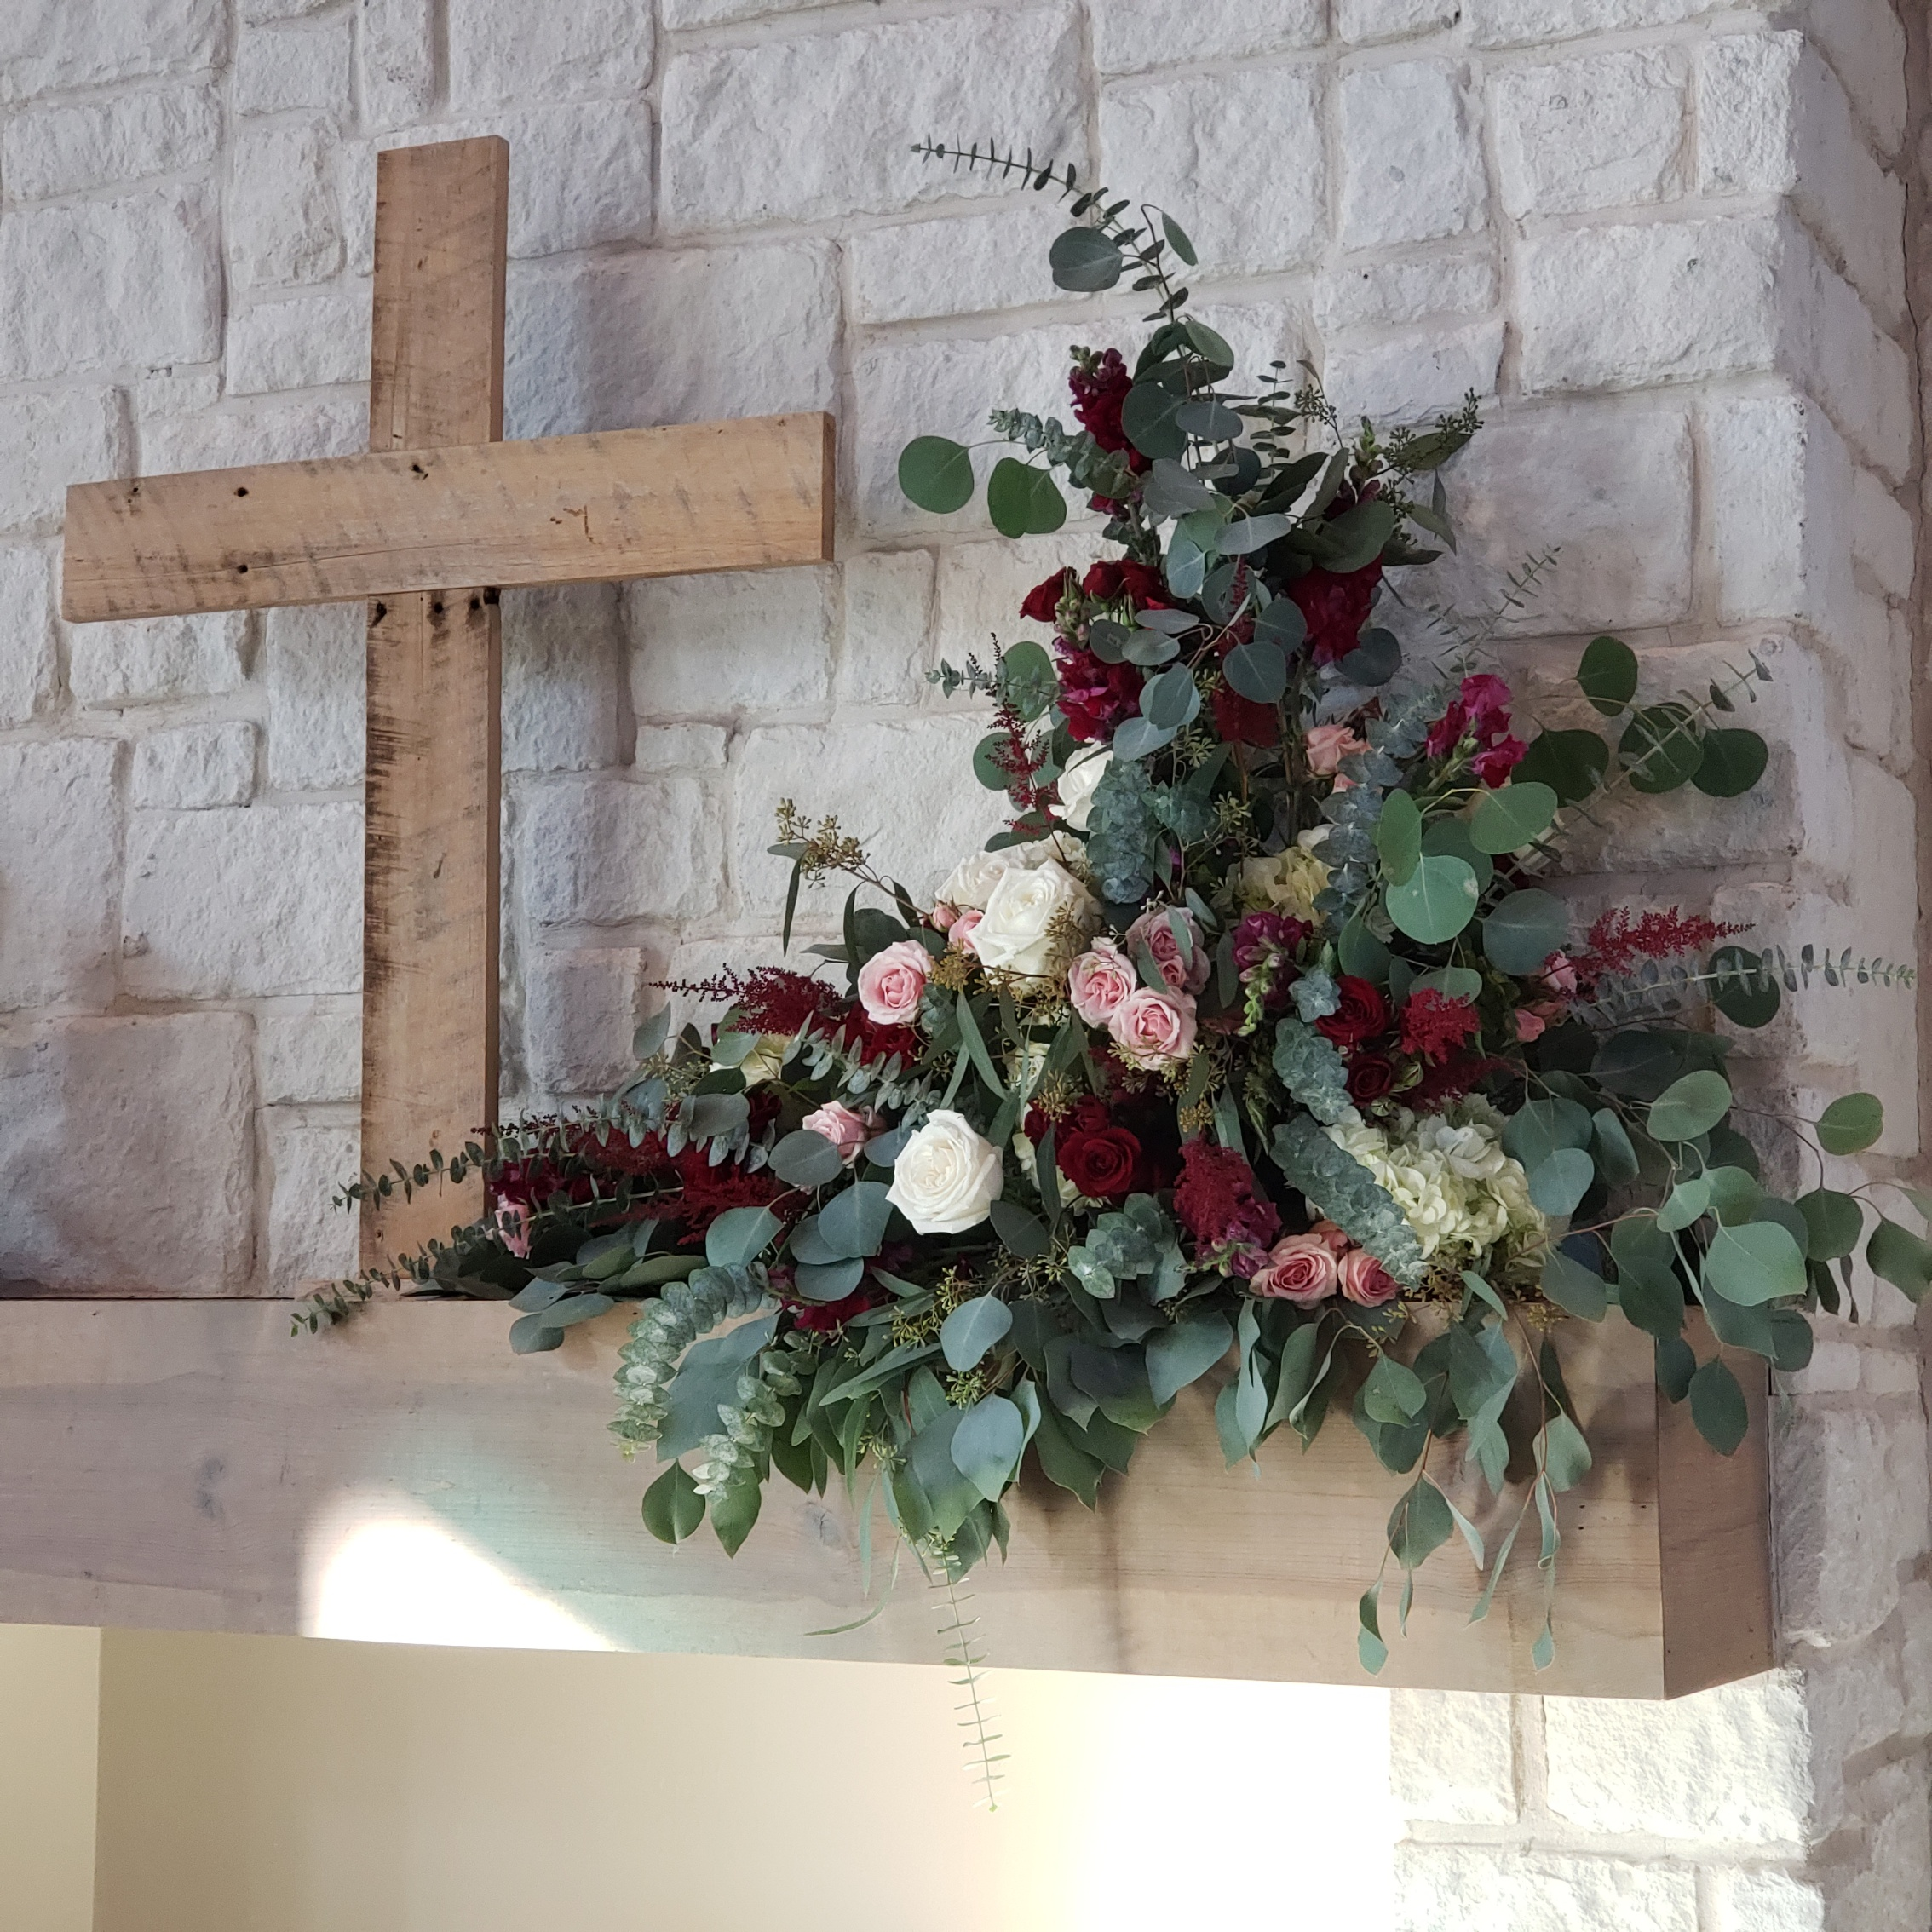 ceremony mantle arrangement.jpg